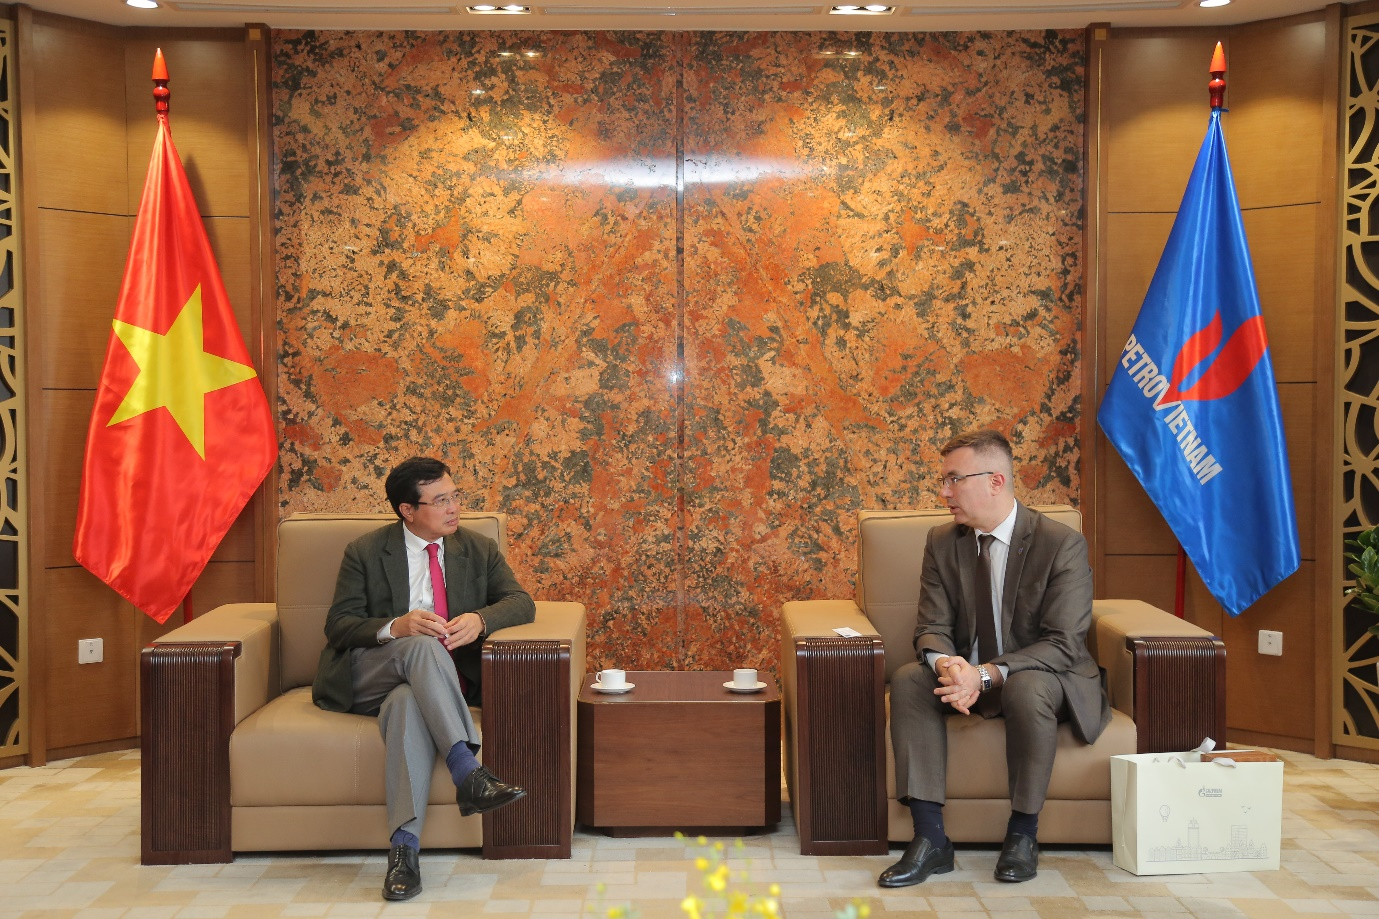 Chairman of the Board of Directors Hoang Quoc Vuong receives Vietgazprom's leader